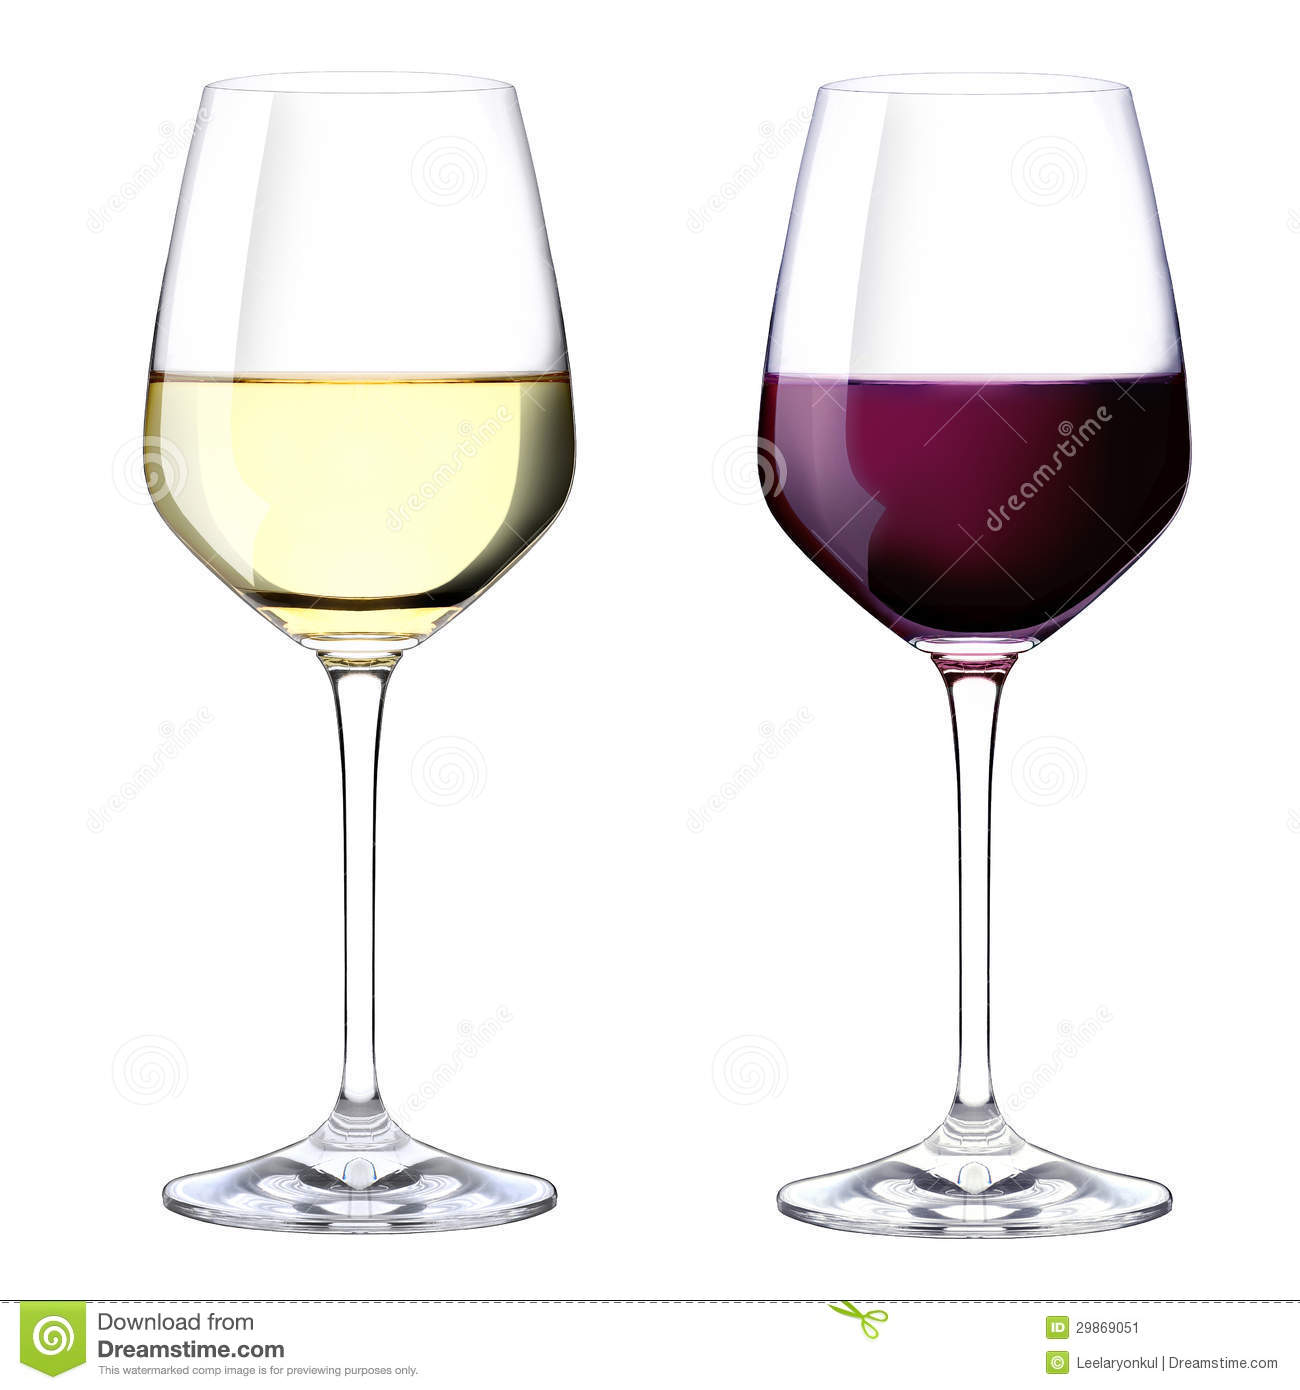 Two Glasses Of Red And White Wine Stock Image - Image ...